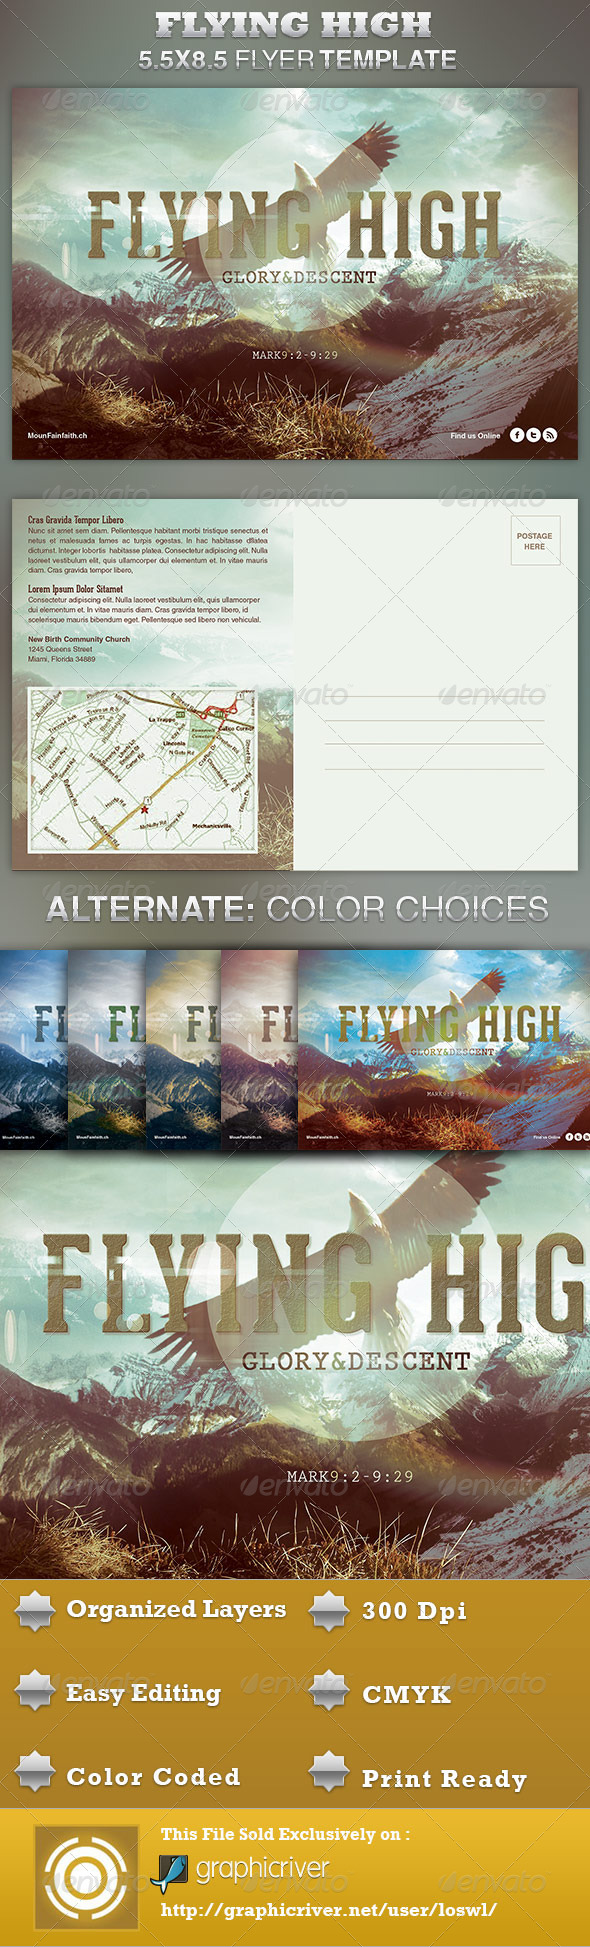 Flying High Church Flyer Template - Church Flyers